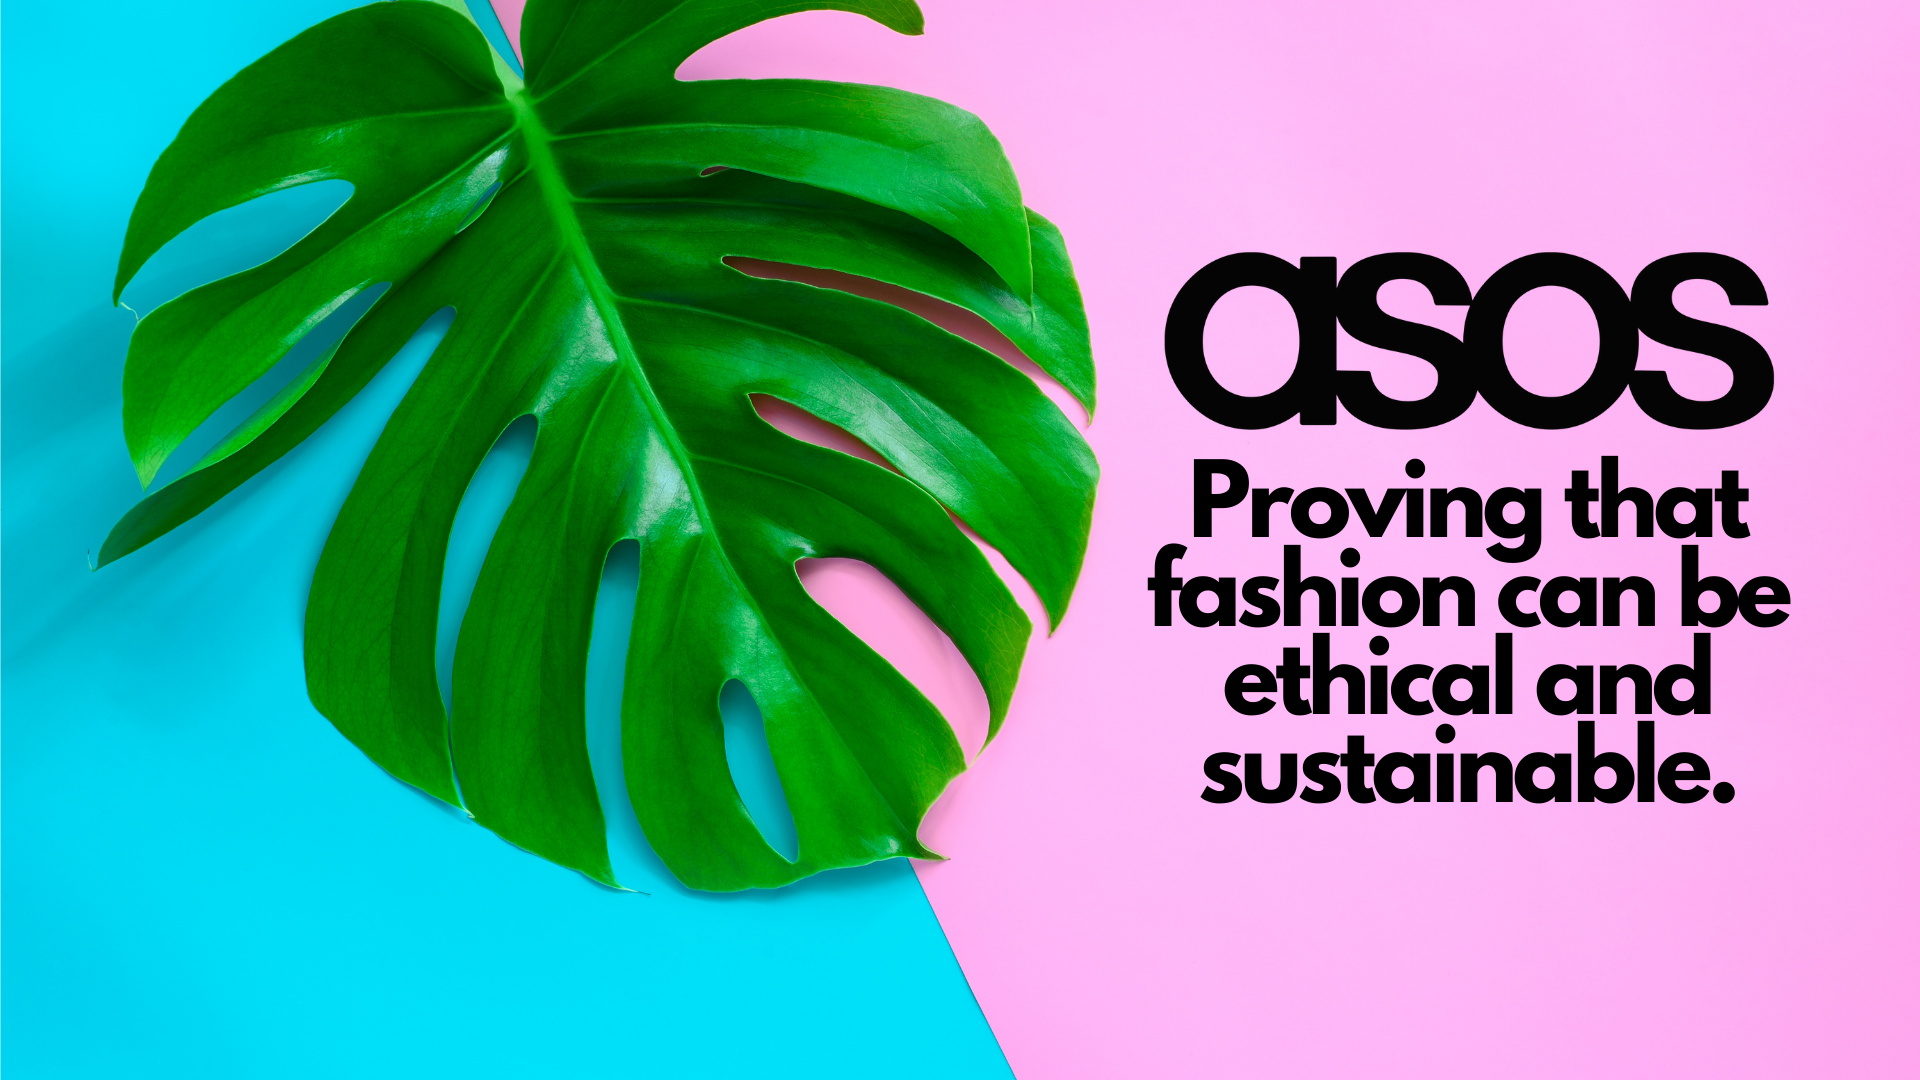 How ethical is ASOS fashion brand?